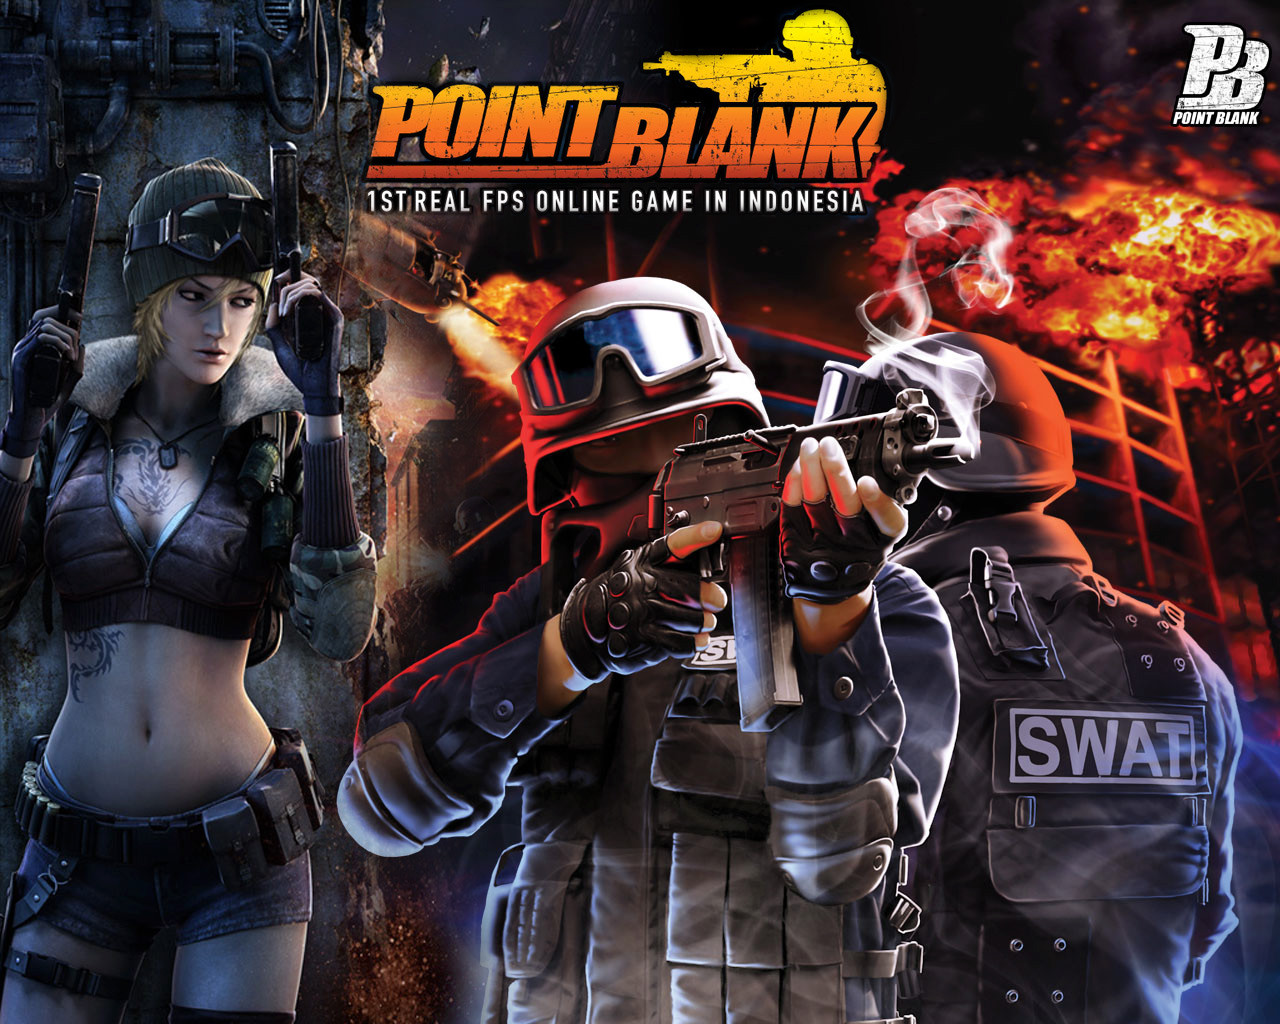 Free Download Wallpapers Point Blank Terbaru 2015 1280x1024